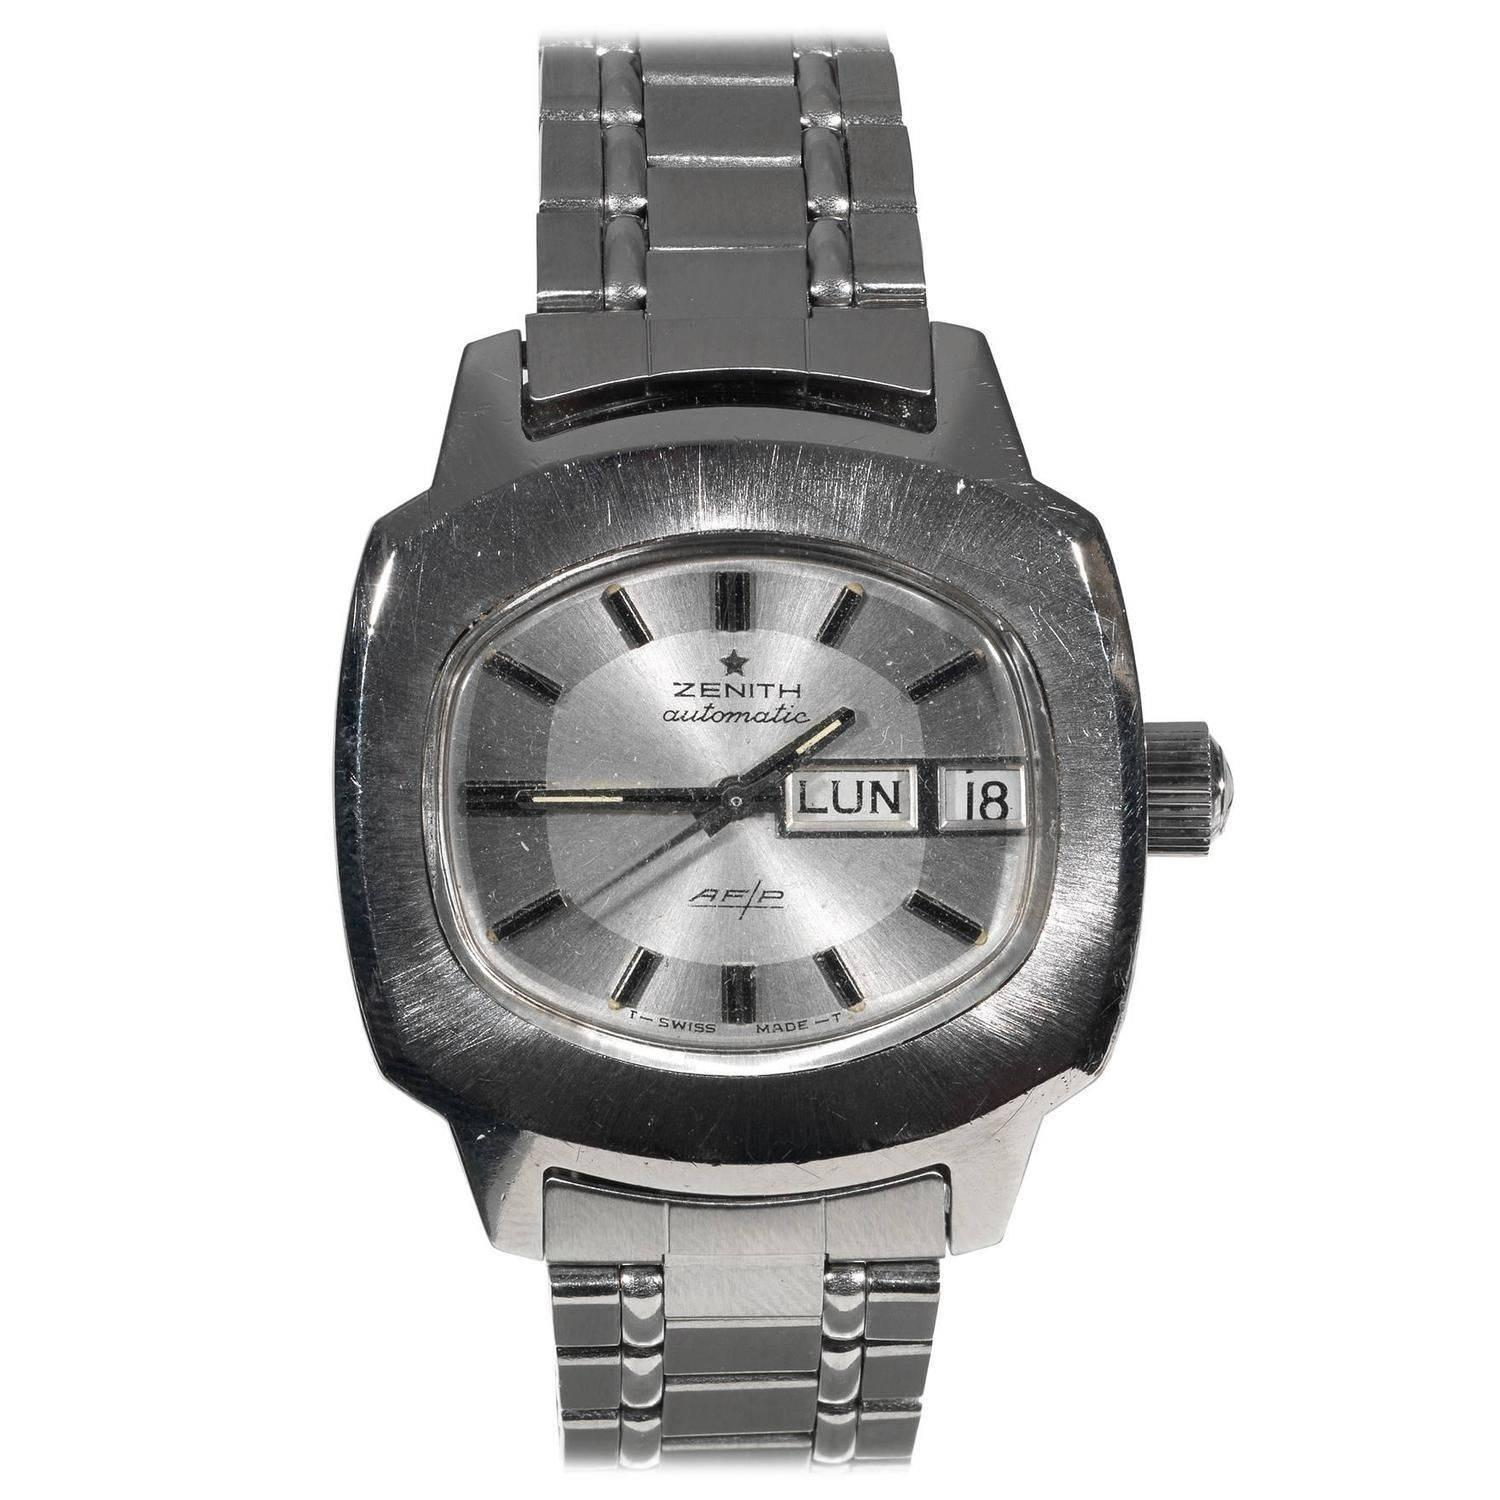 Zenith Stainless Steel AF/P Automatic Bracelet Wristwatch ...